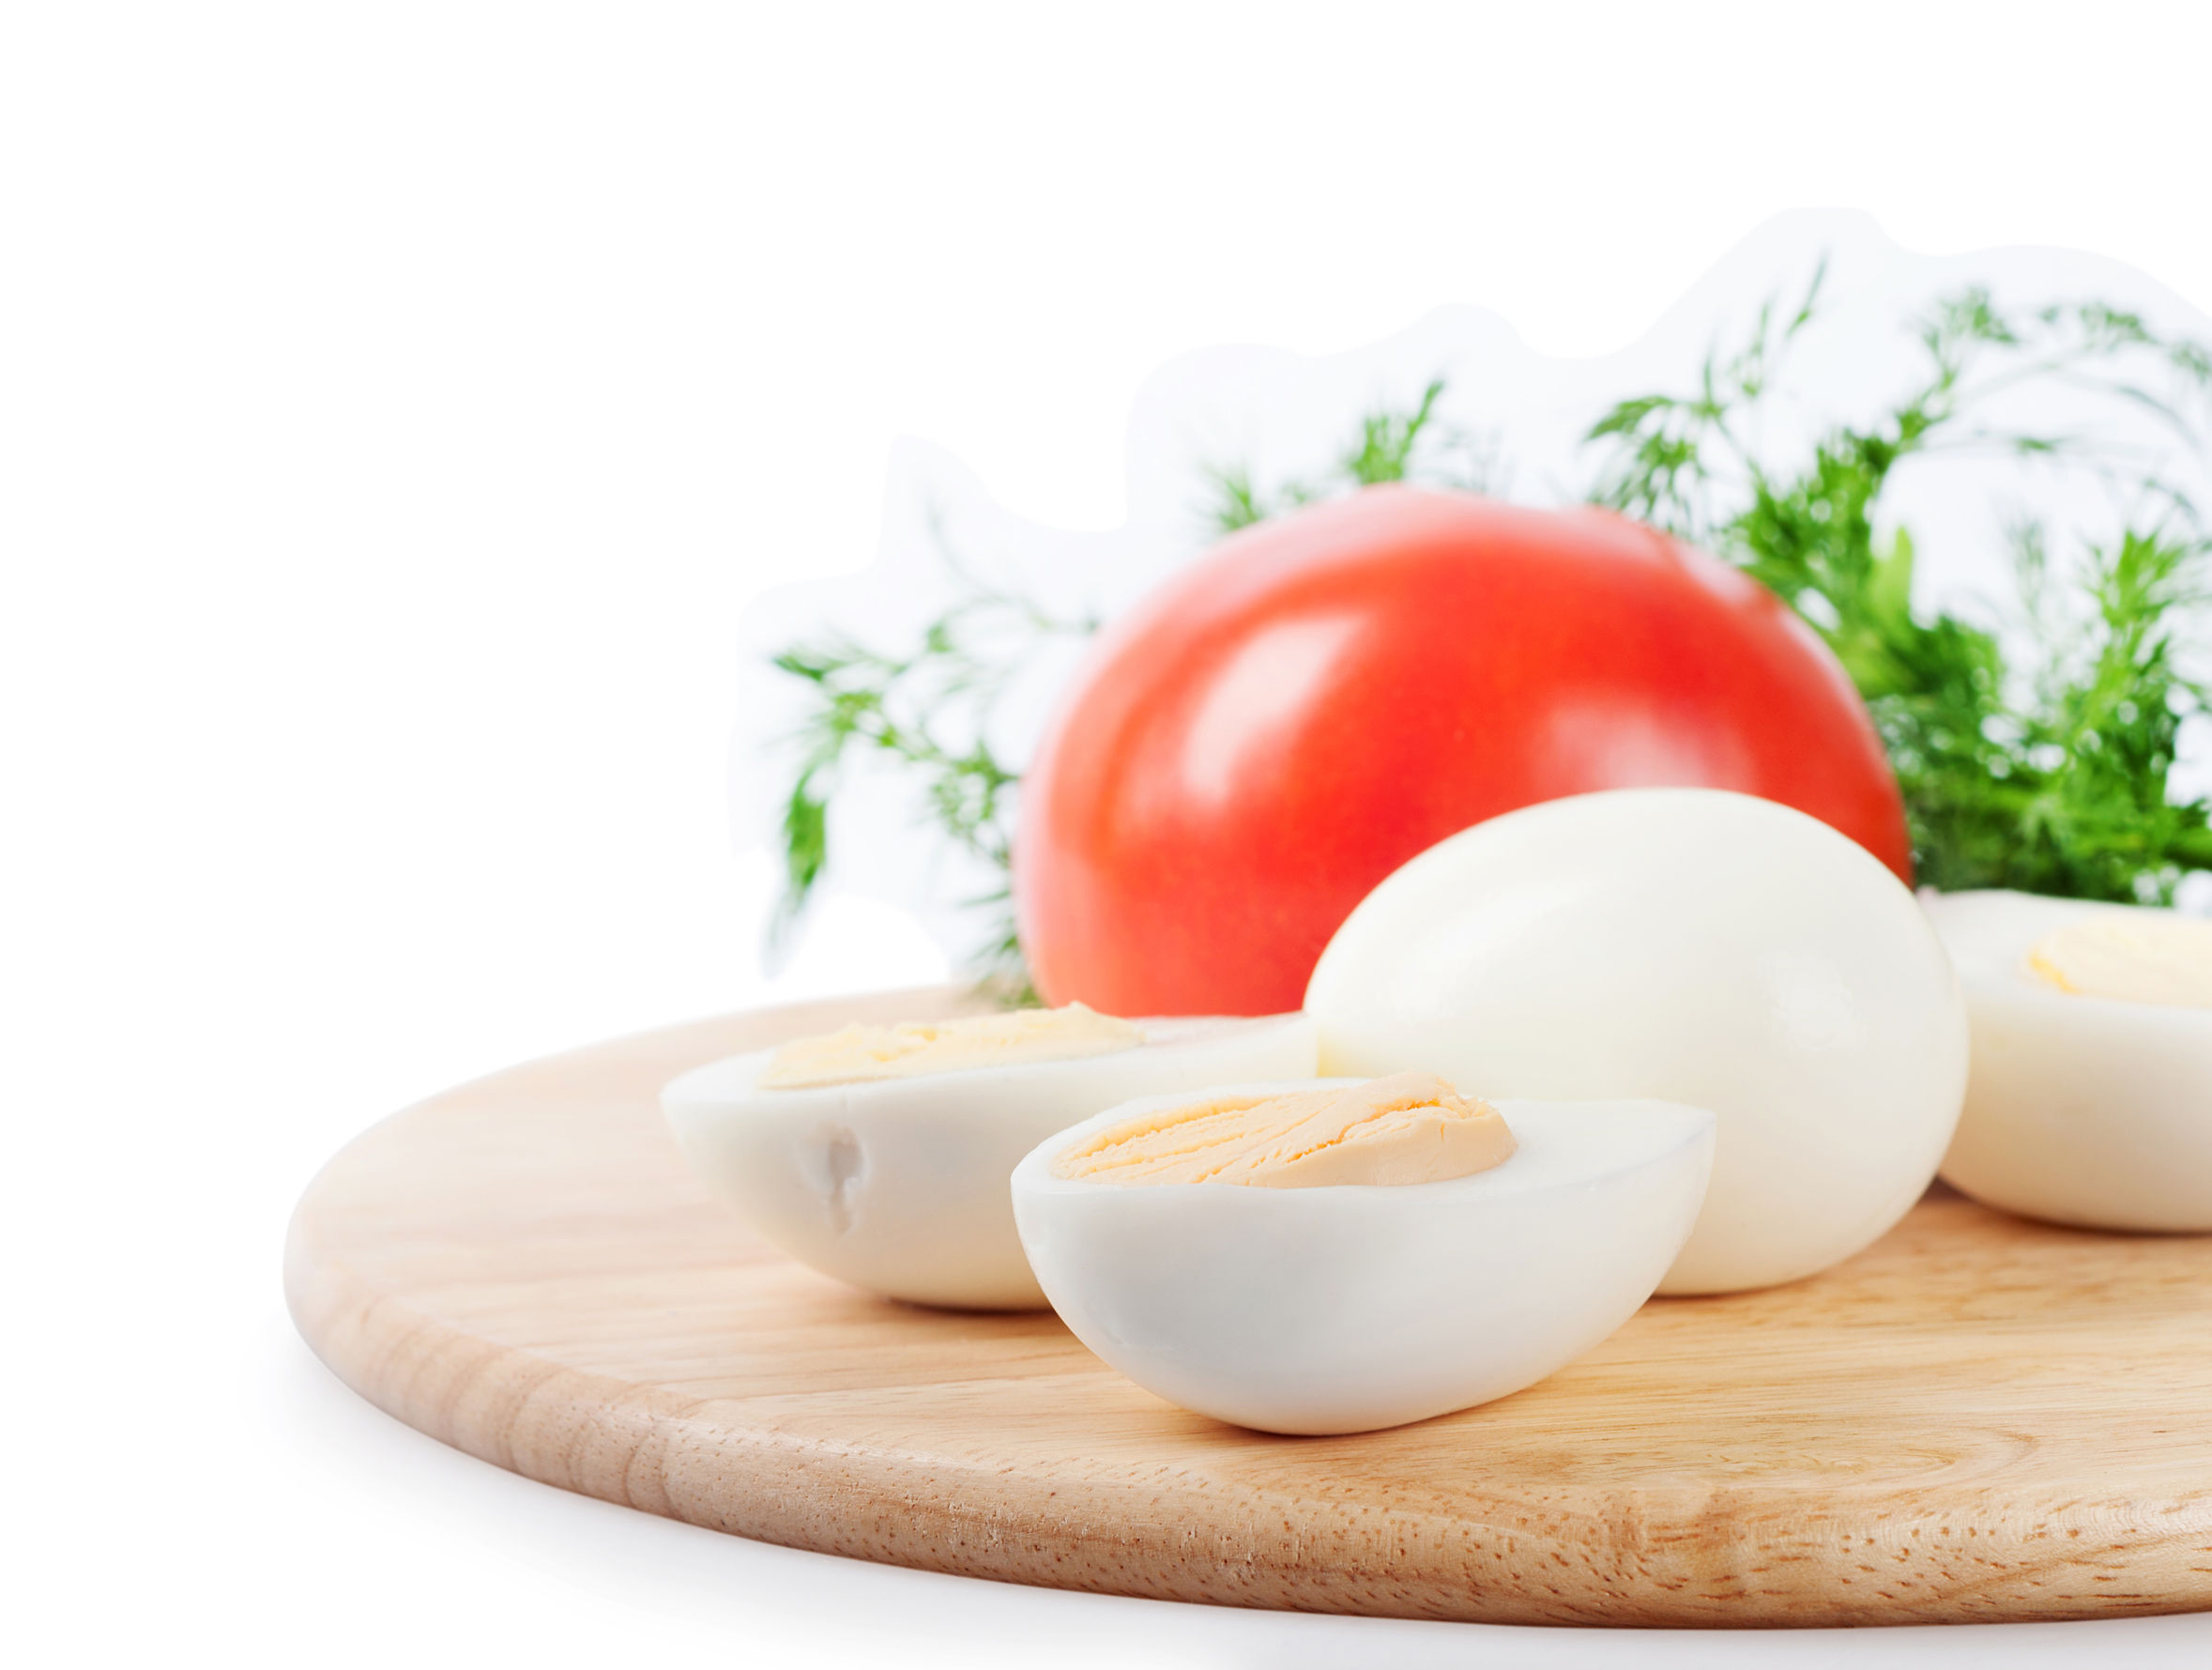 59849896 - boiled hen eggs and tomato on a white background